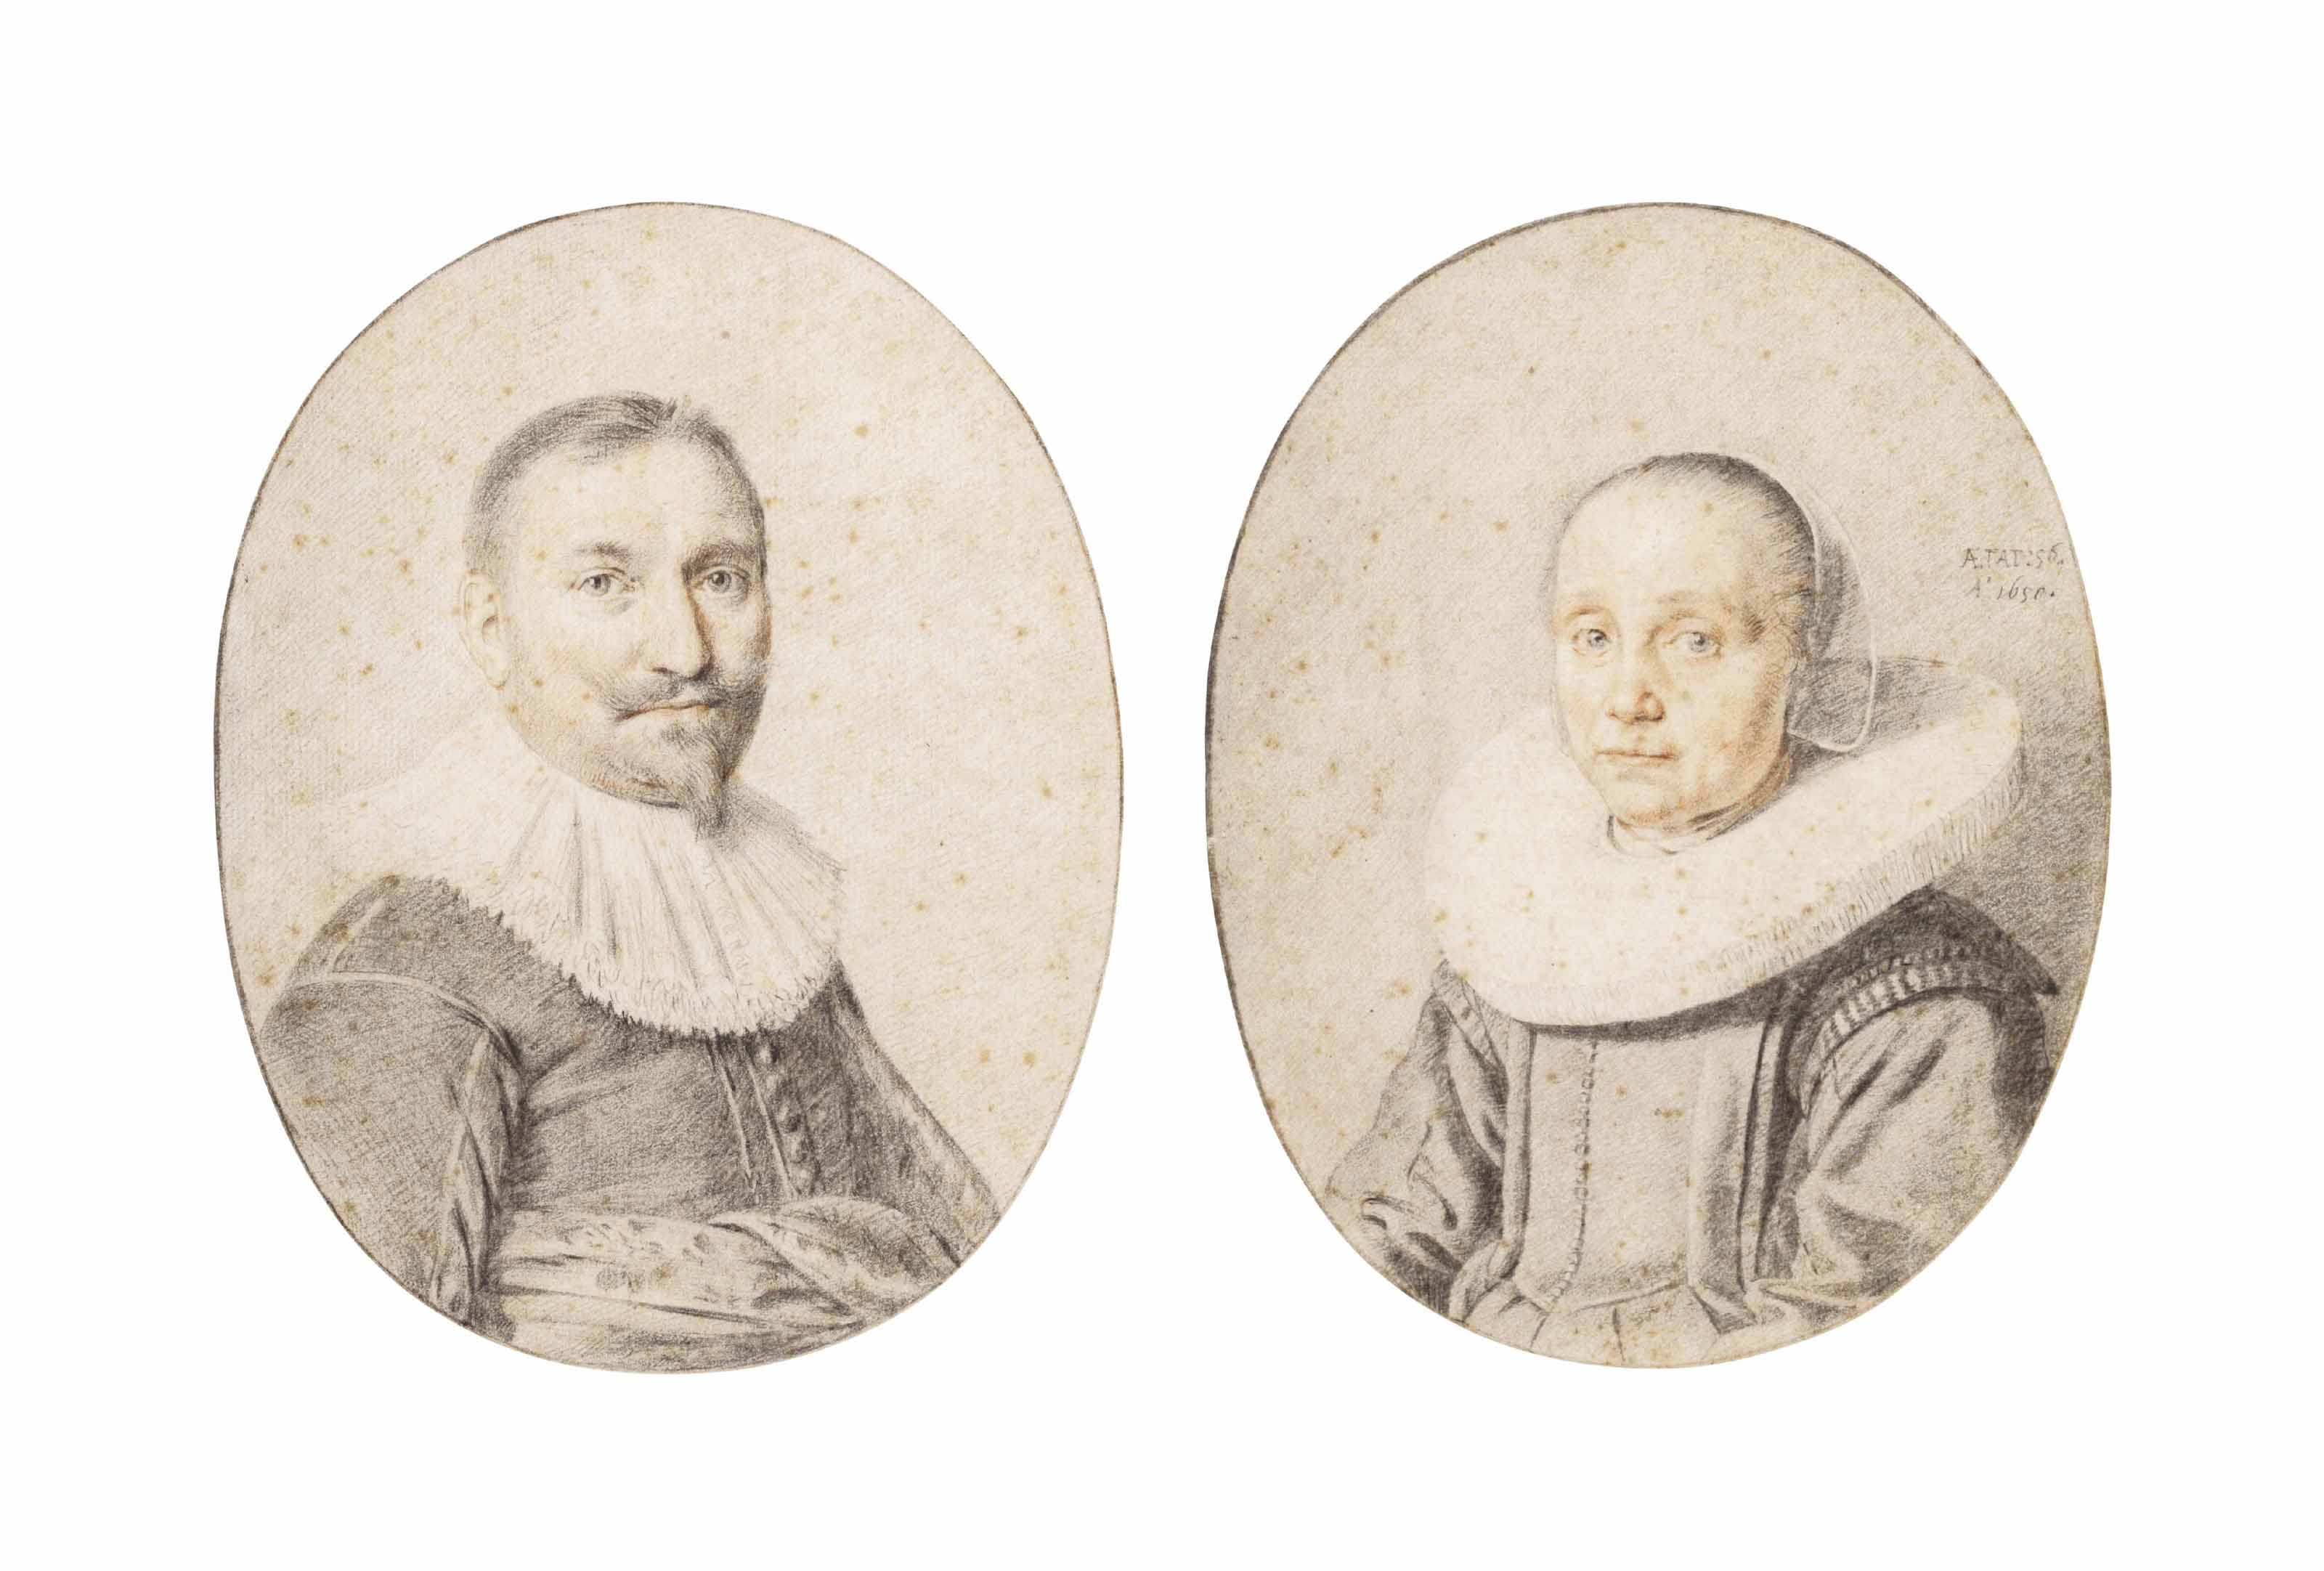 Portraits of a man and a woman